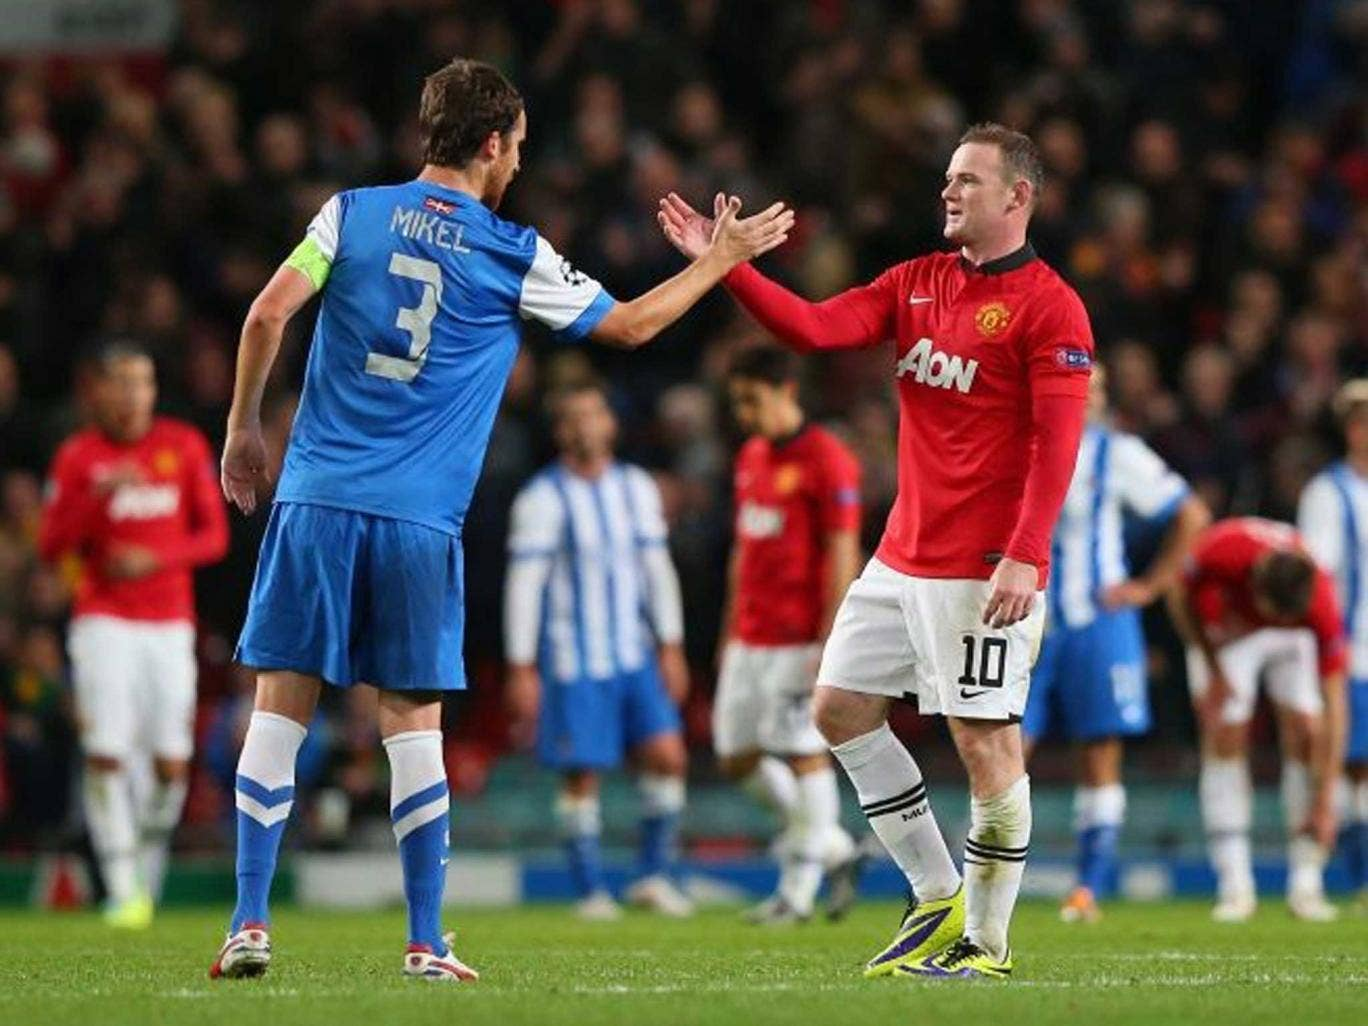 Wayne Rooney of Manchester United shakes hands with Mikel Gonzalez of Real Sociedad at the end of the UEFA Champions League Group A match